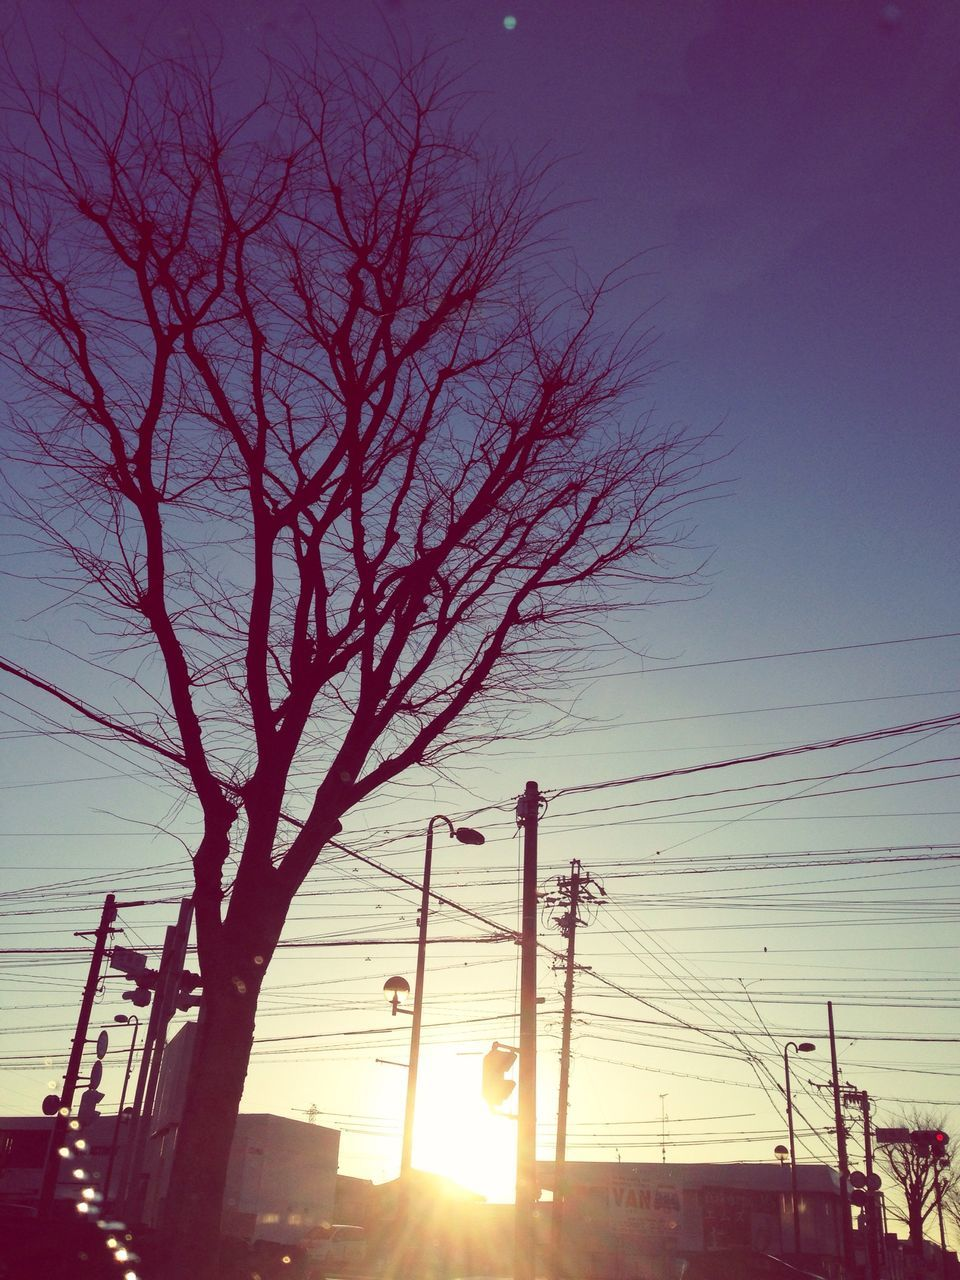 sunset, cable, sky, sun, power line, no people, sunlight, low angle view, outdoors, bare tree, silhouette, built structure, electricity pylon, nature, building exterior, tree, architecture, clear sky, telephone line, day, city